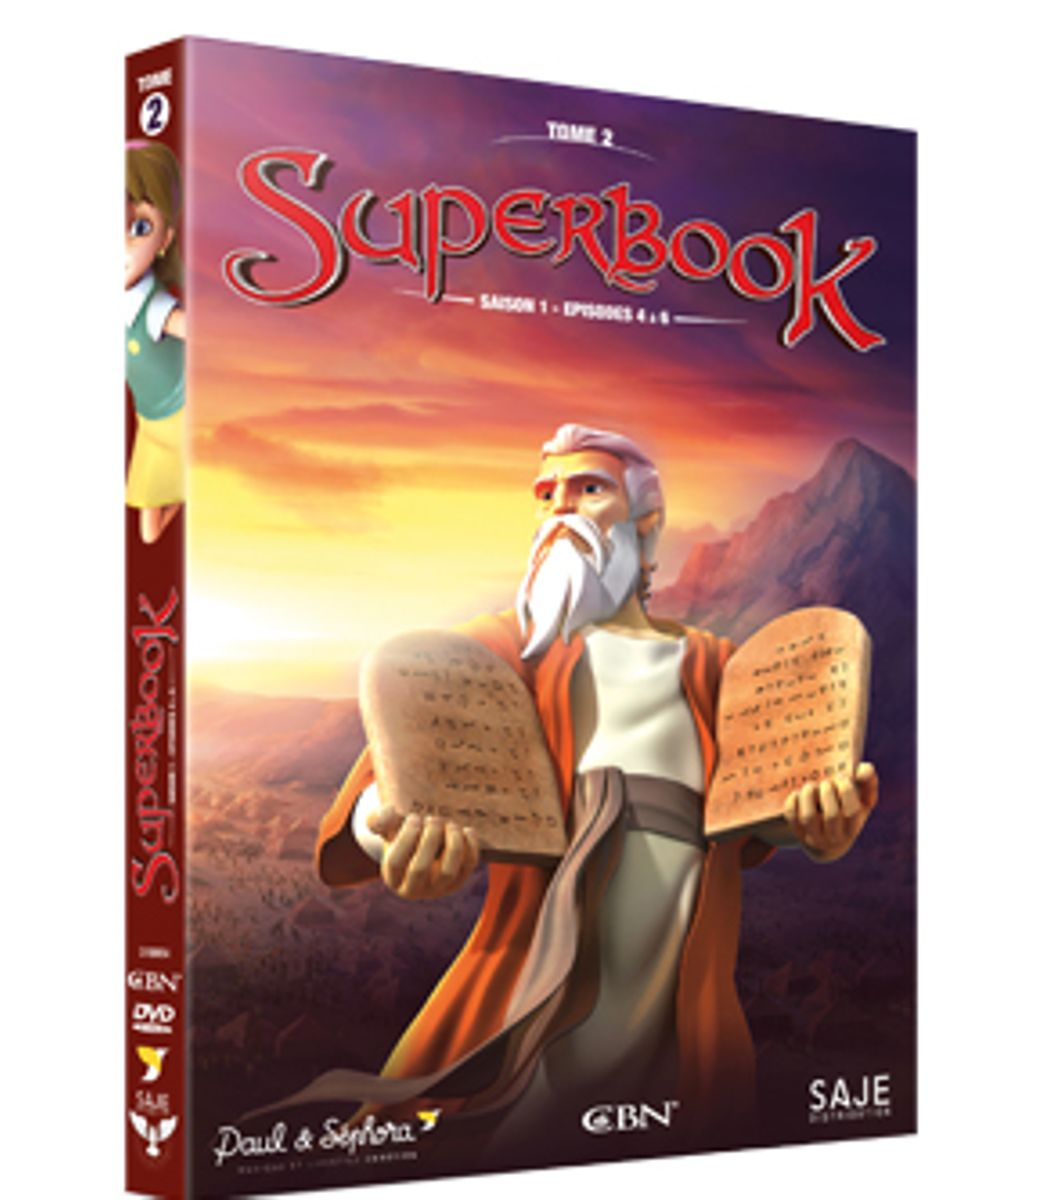 SUPERBOOK TOME 2 - SAISON 1 - EPISODE 4 A 6 - DVD